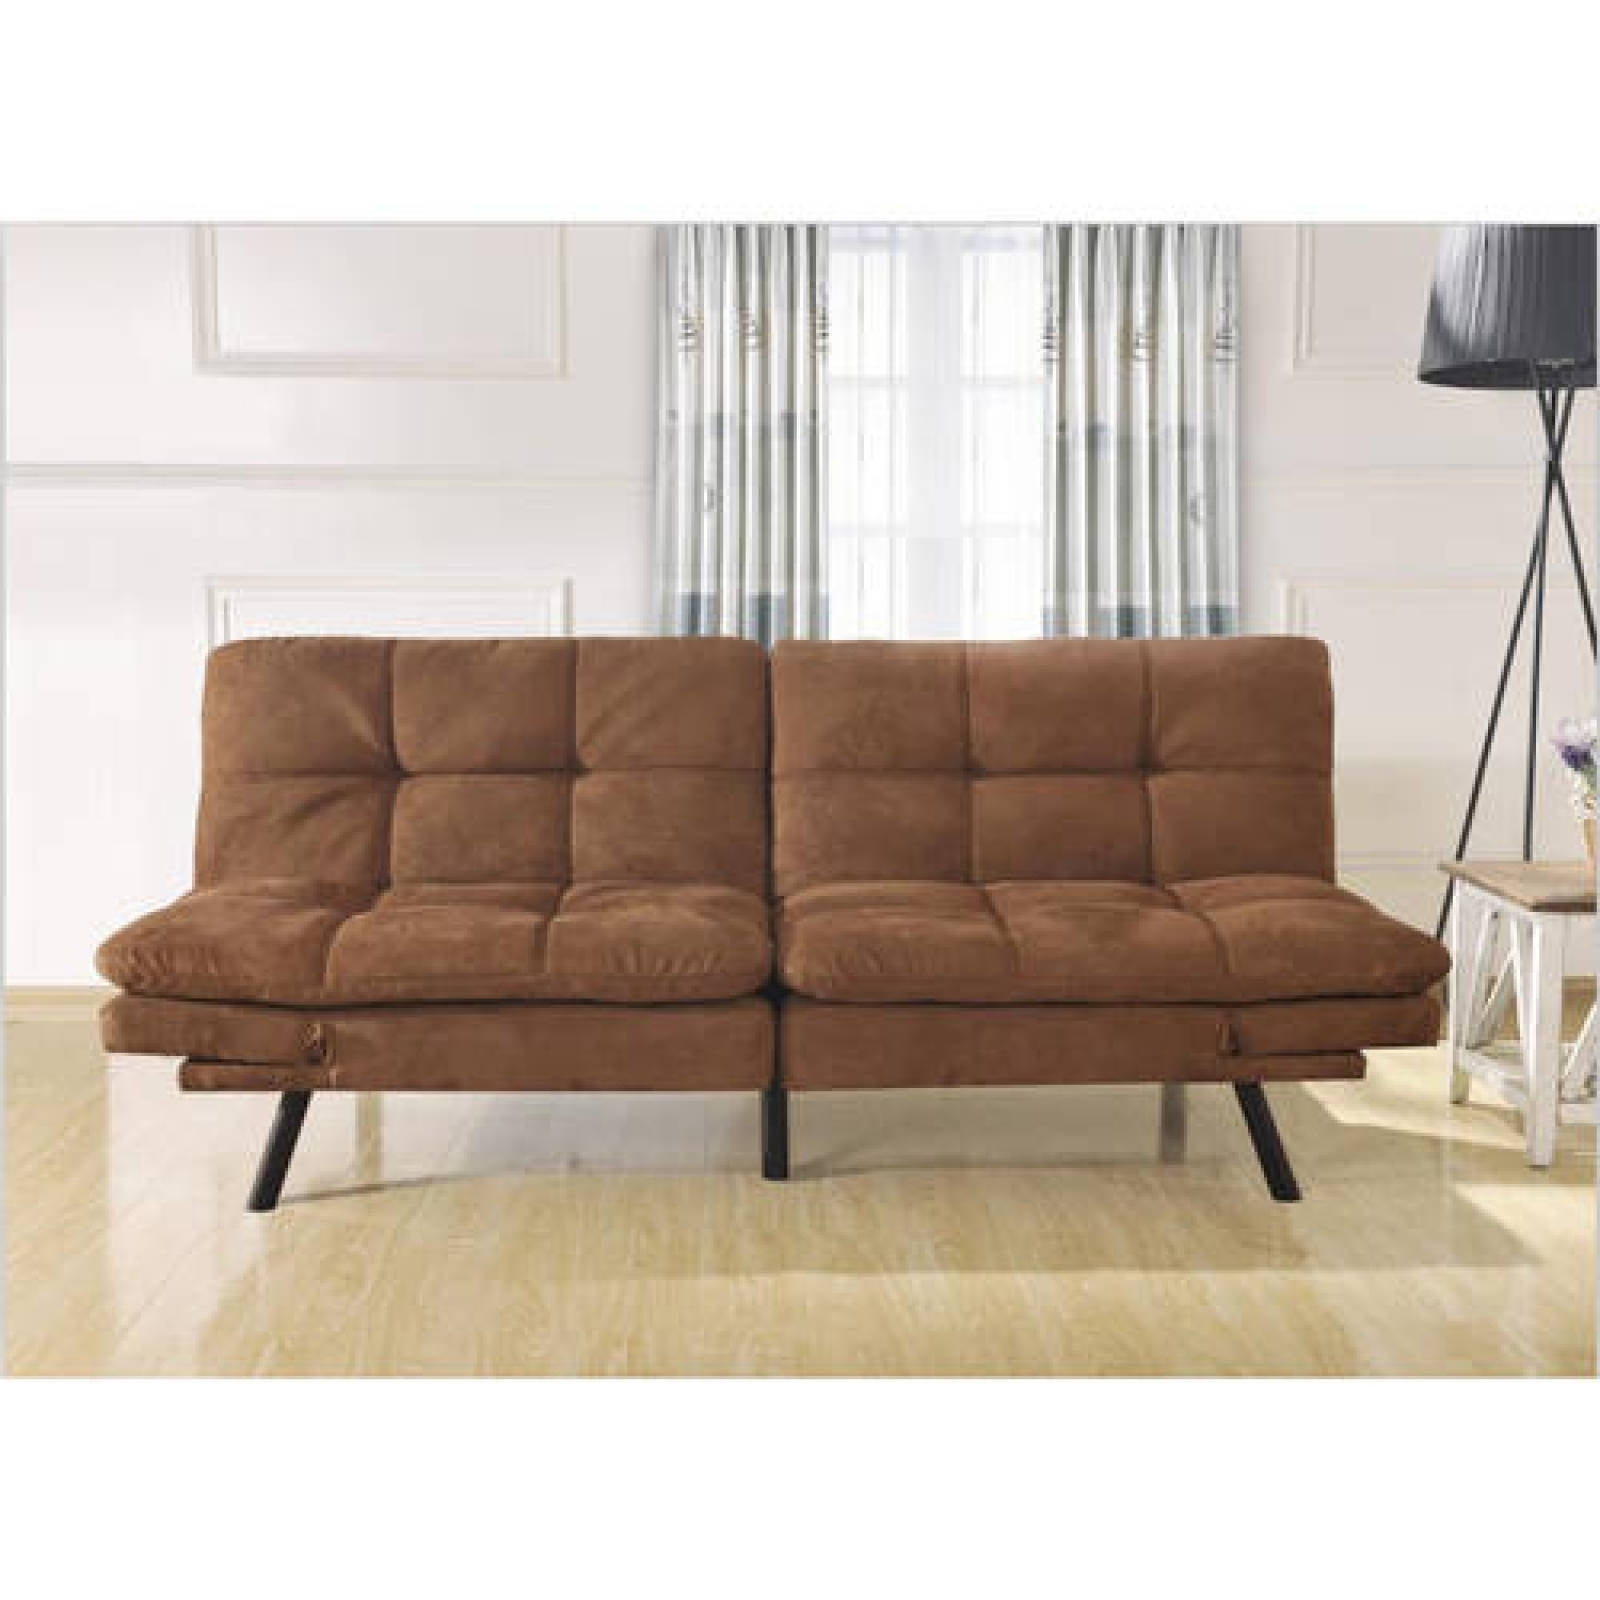 Most Recently Released Convertible Sofa Bed Couch Futon Chaises Chair Seat Memory Foam Throughout Futon Chaises (View 15 of 15)